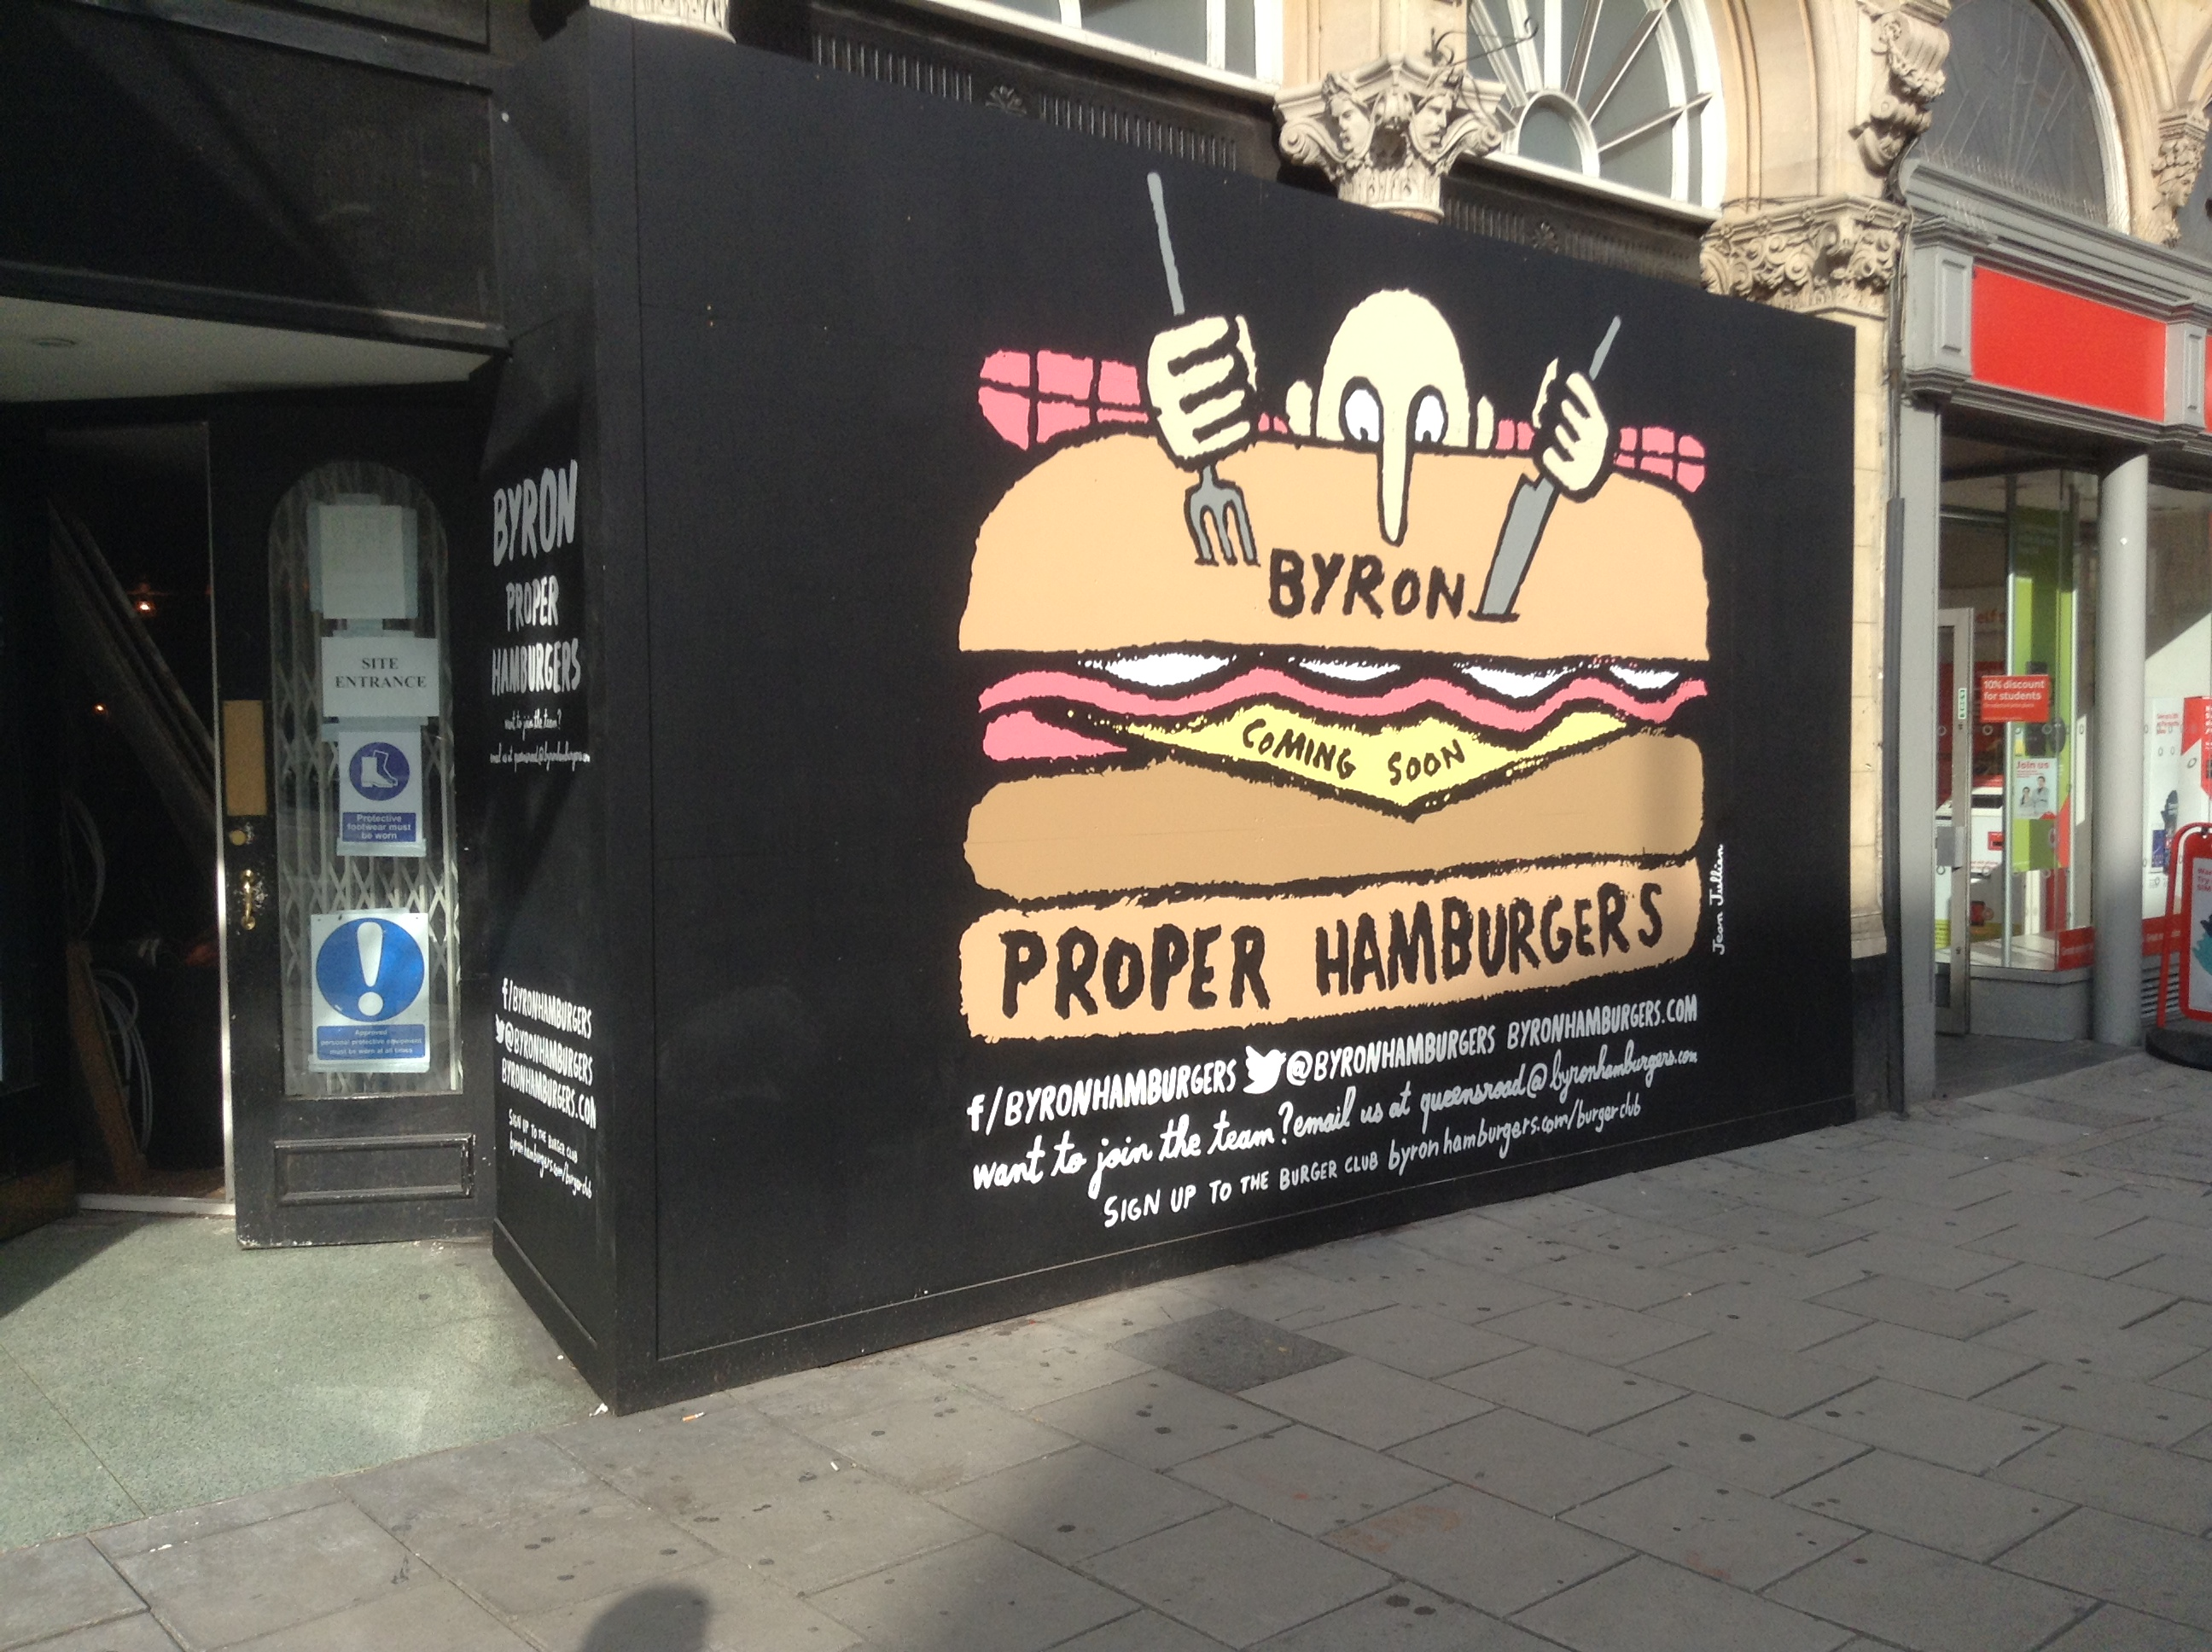 Hoarding for Byron restaurant in Bristol